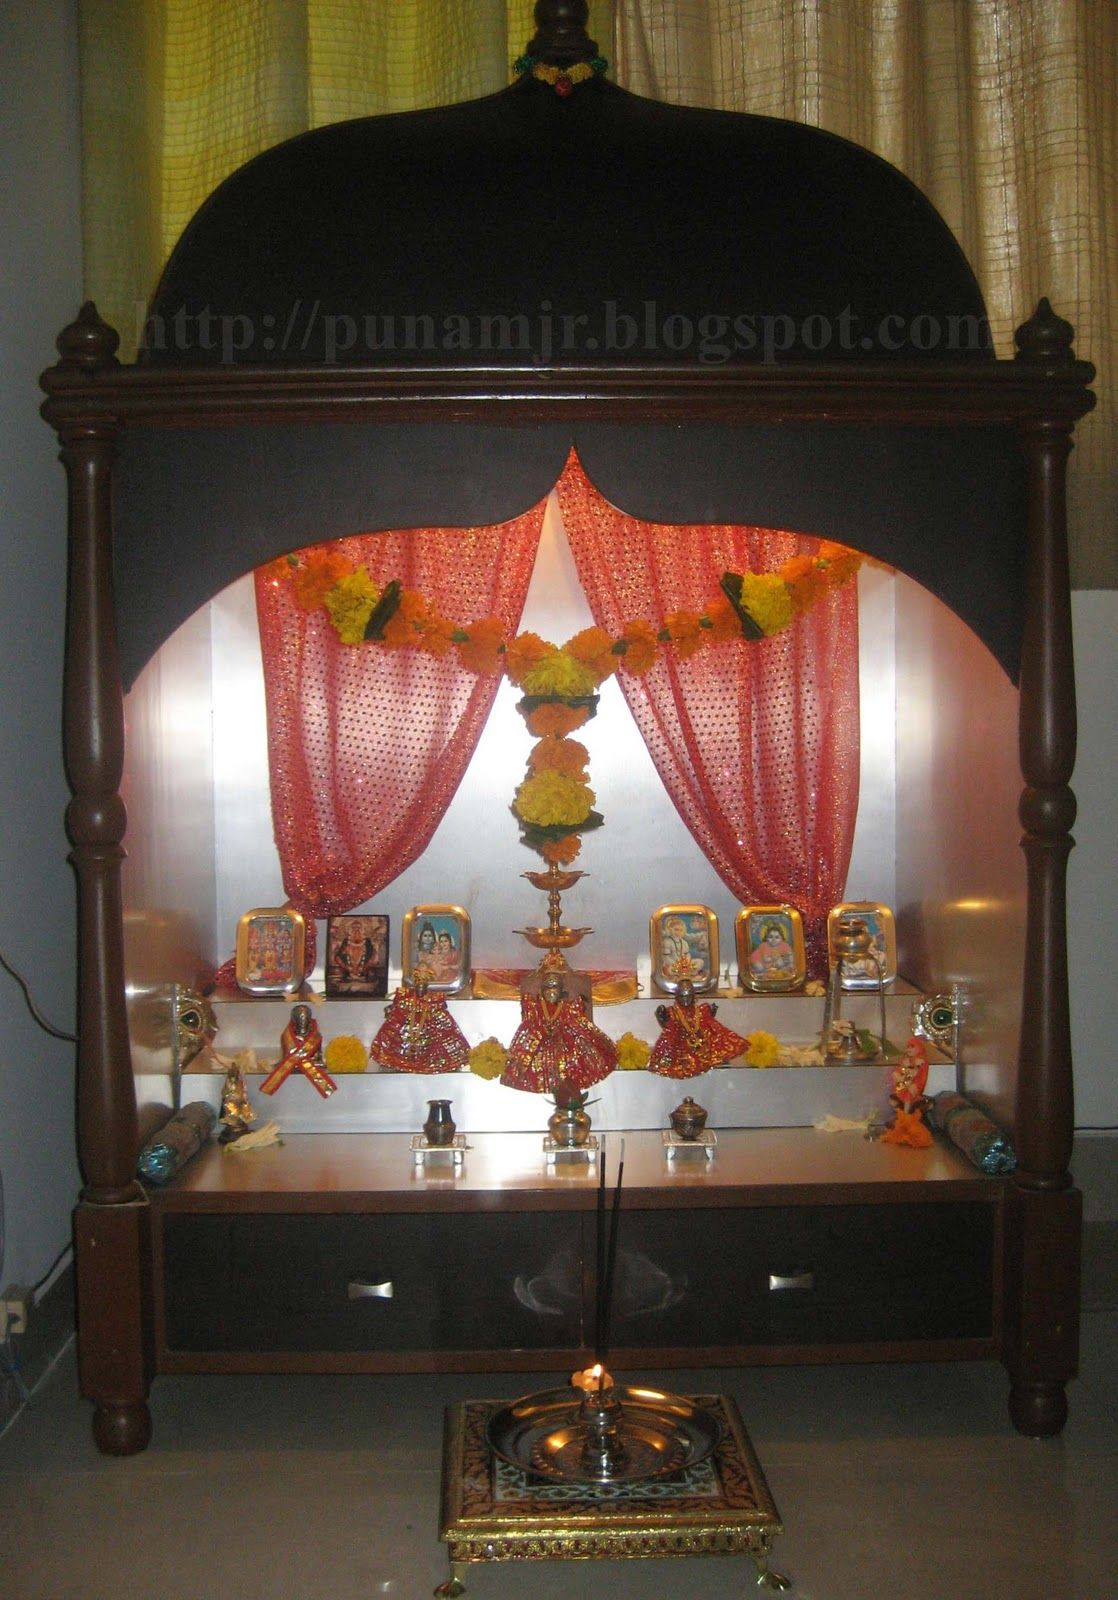 Mandir for home marble mandir designs for home hawaii dermatology pictures prayer alters for Marble temple designs for home